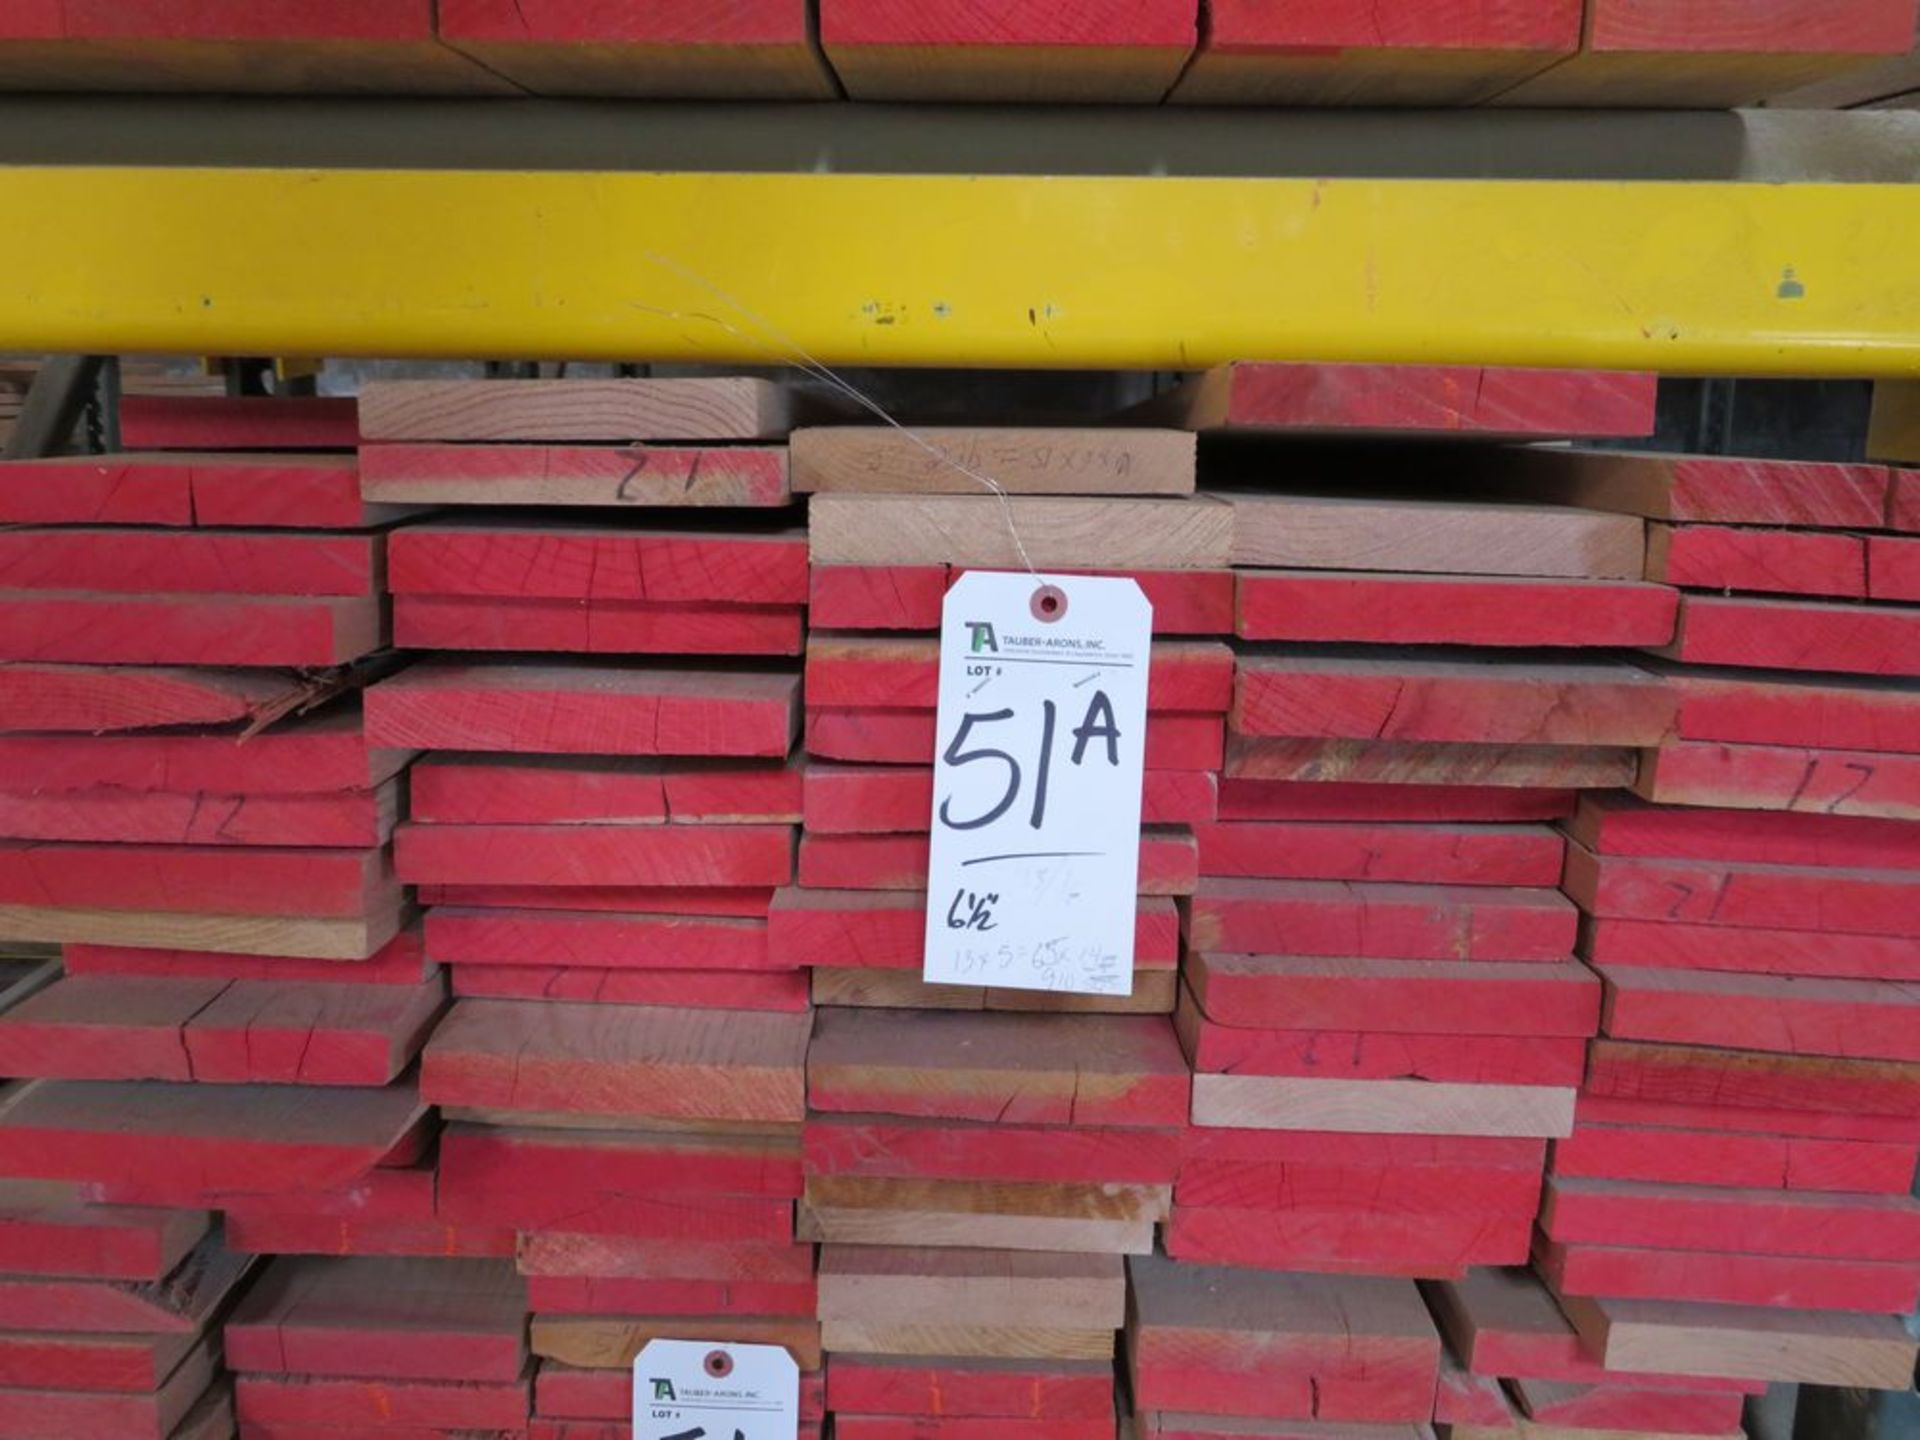 Lot 51a - (Lot) Red Oak (Grade Sel Rift S4S), Thickness